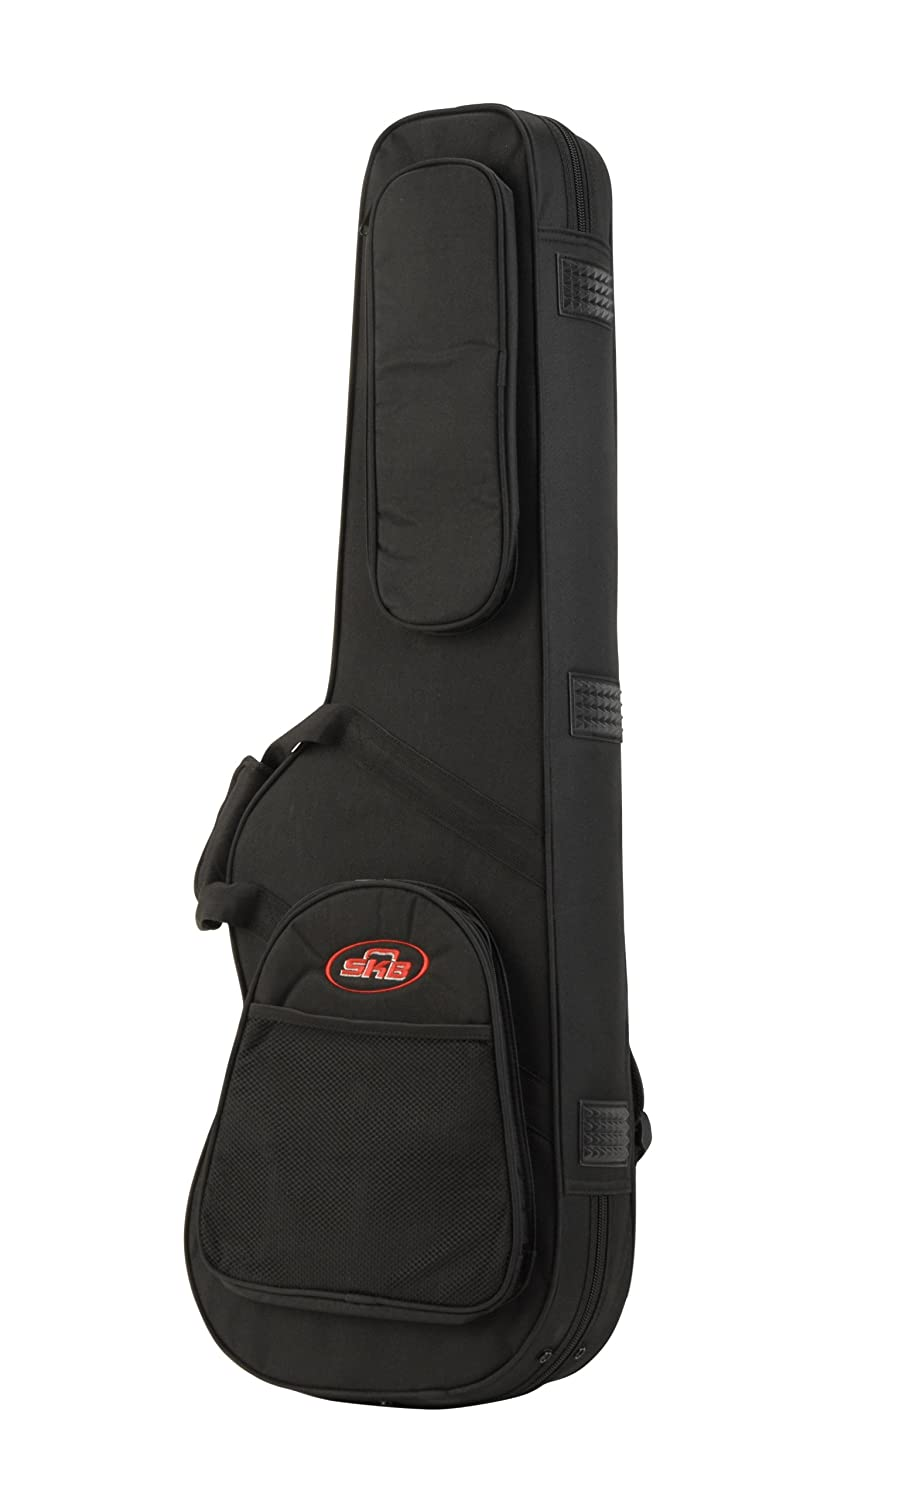 SKB Universal Shaped Electric Guitar Soft case with EPS foam interior/Nylon exterior, back straps 1SKB-SCFS6